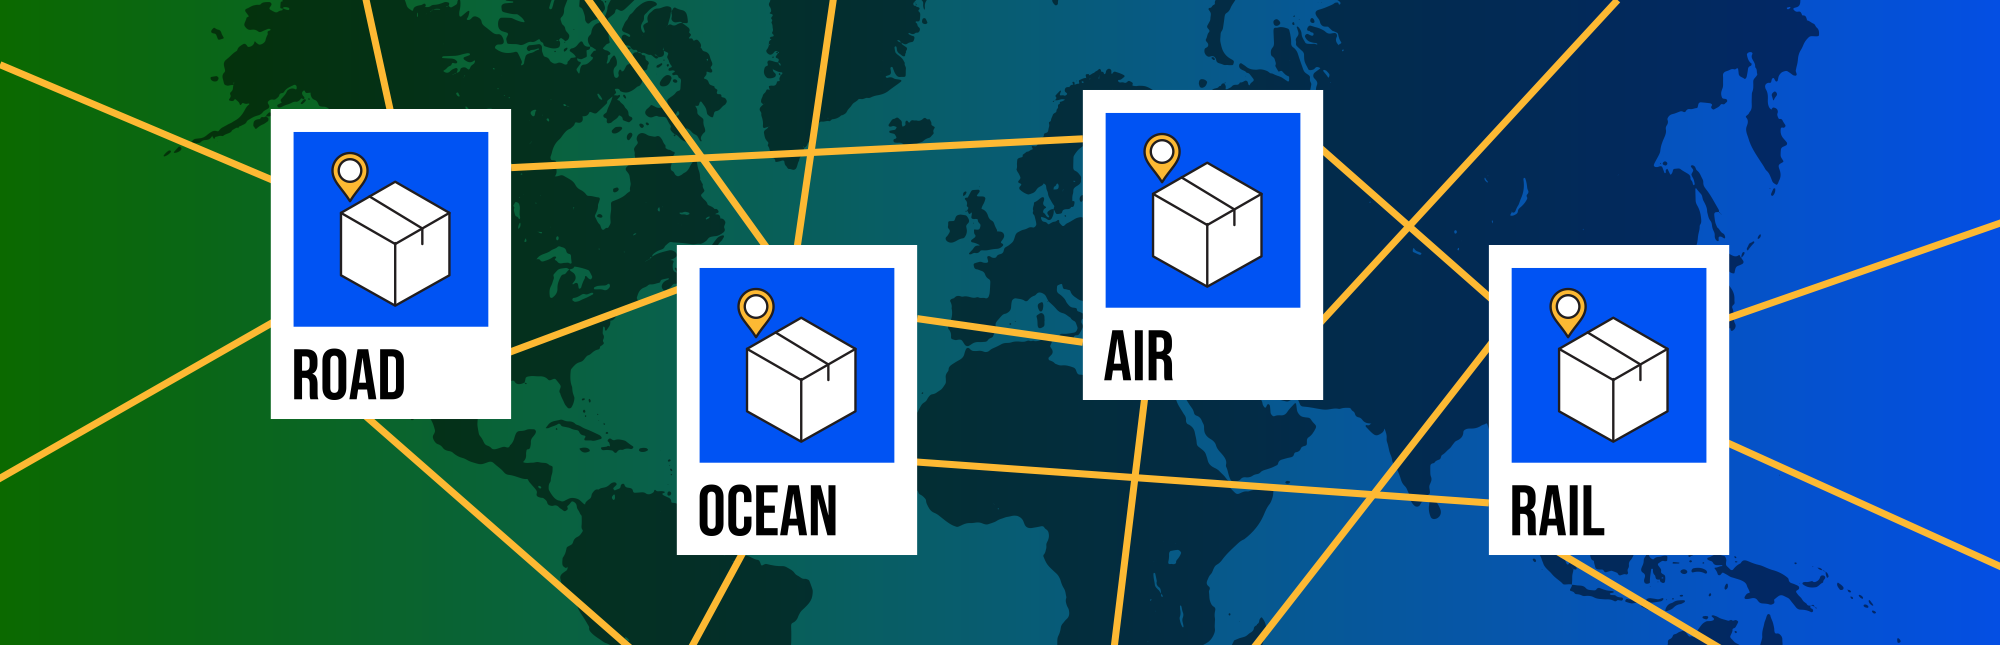 Here's How an End-to-End Intermodal Shipment Tracking System Works